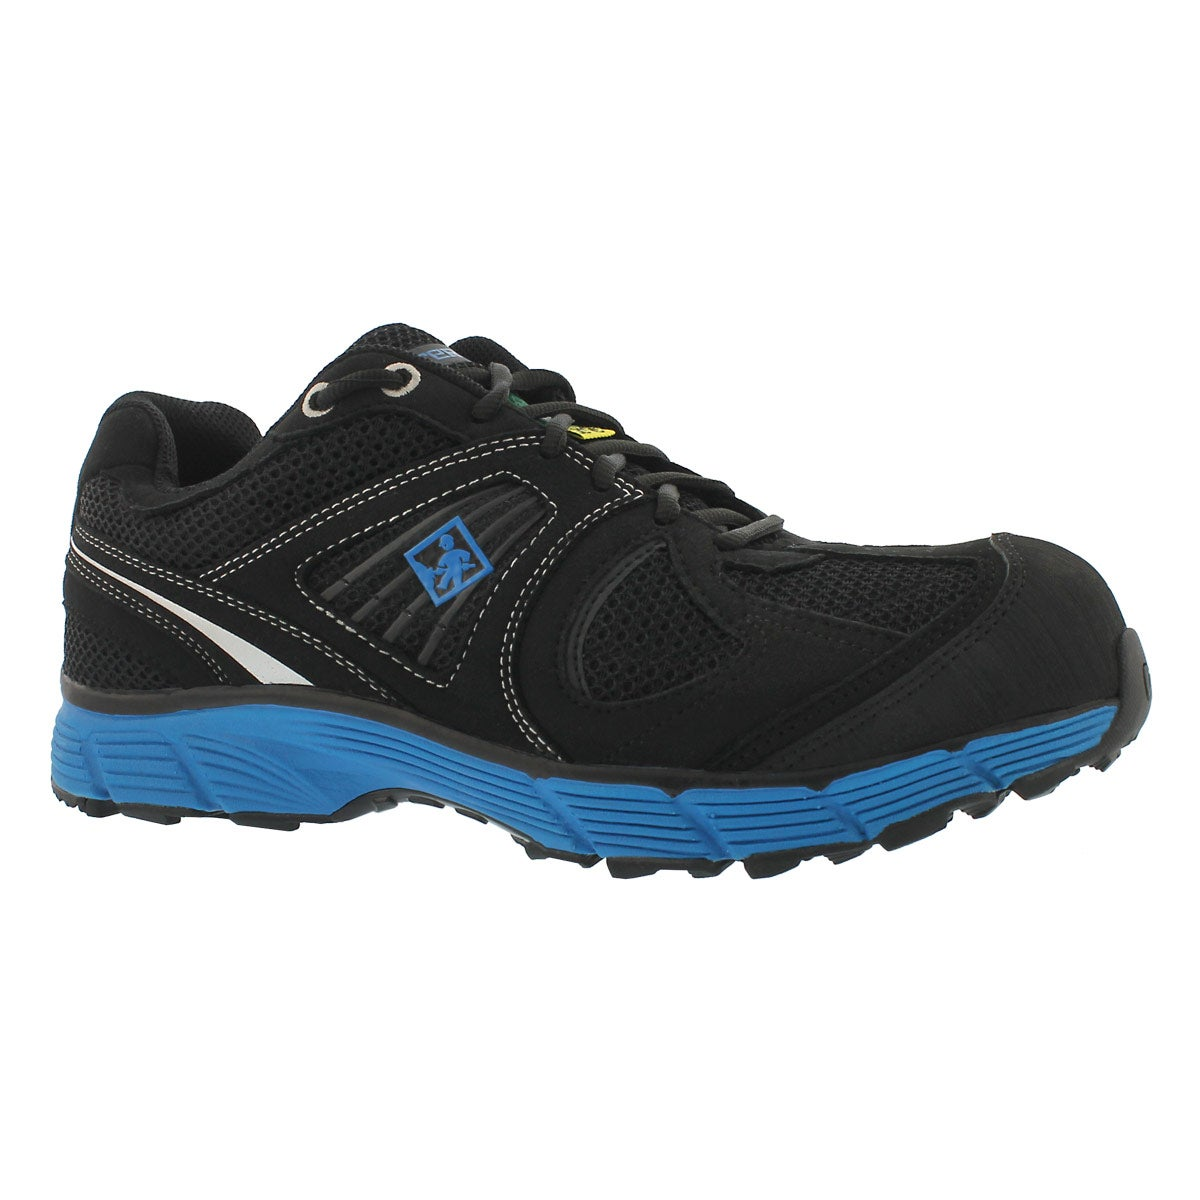 Men's PACER black/blue lace up CSA sneakers